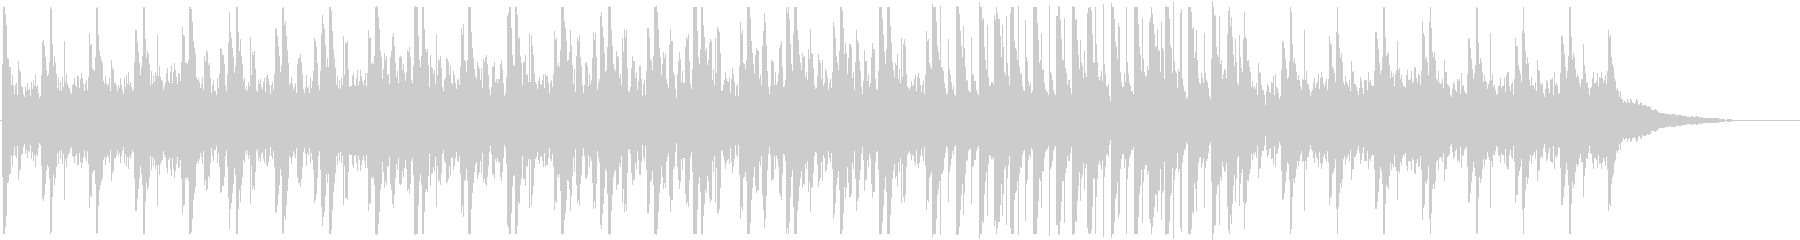 Japanese-style BGM of Japanese drums and sho (daily / comical)'s unreproduced waveform